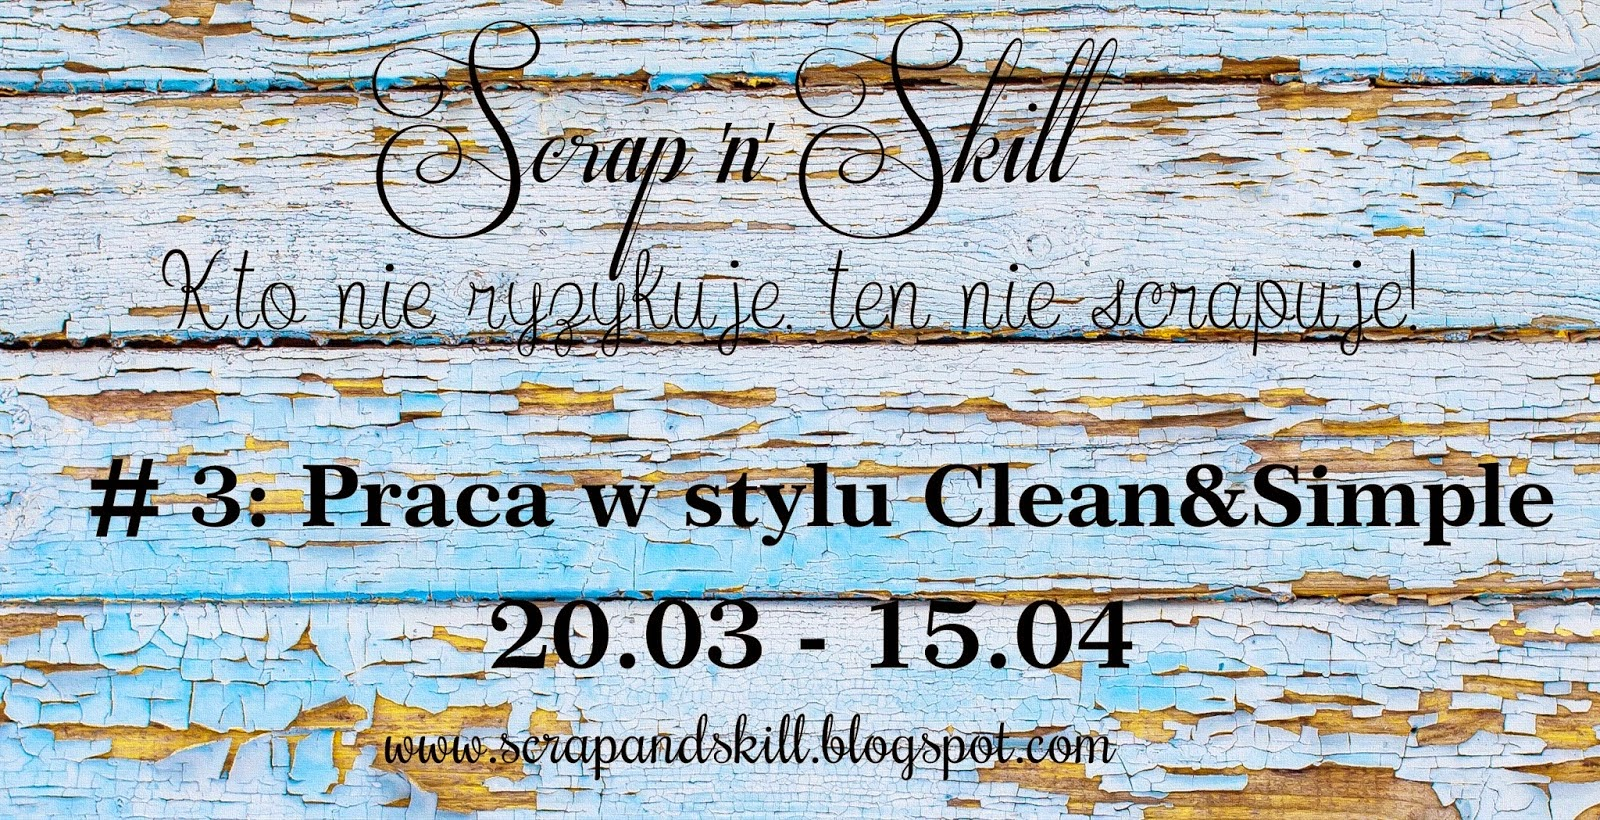 http://scrapandskill.blogspot.ie/2015/03/wyzwanie-3-clean-simple.html